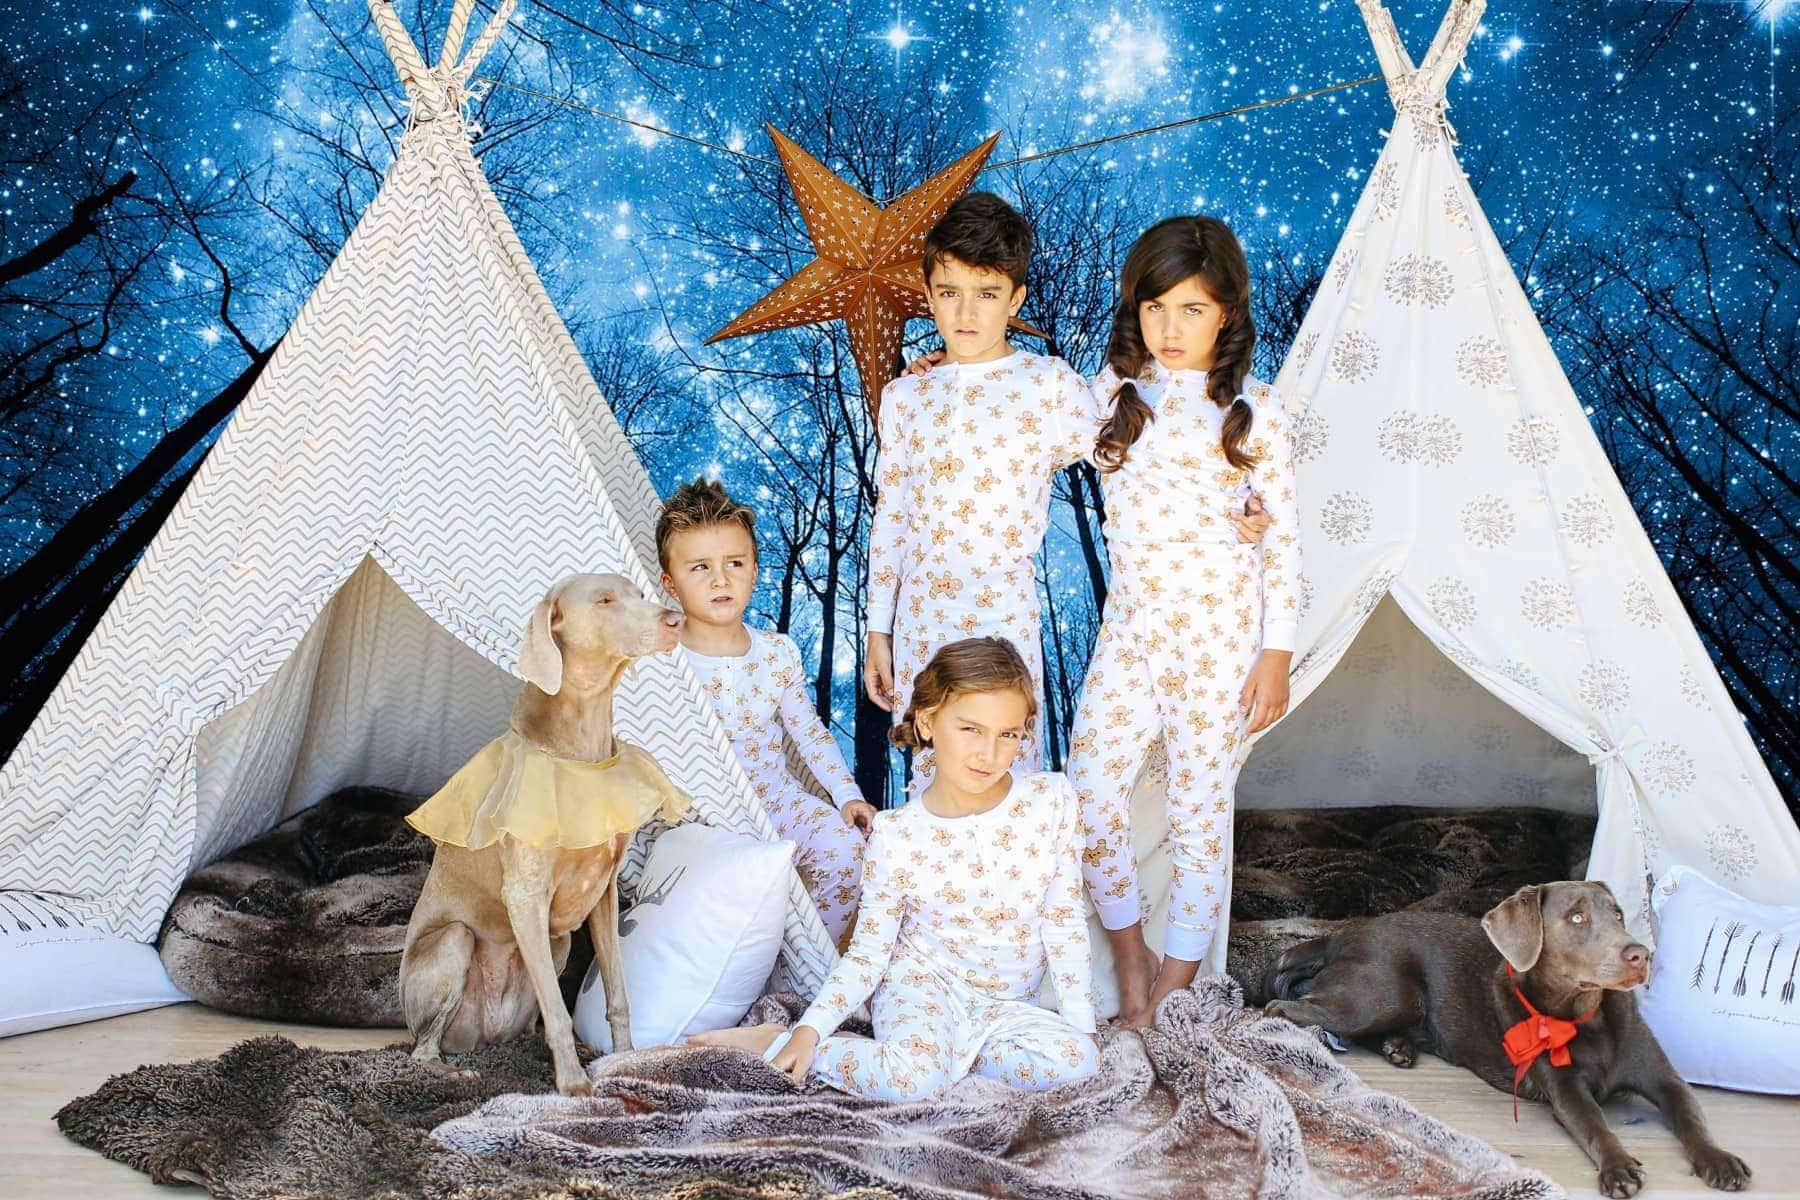 kids and dog in pajamas with teepees and night sky